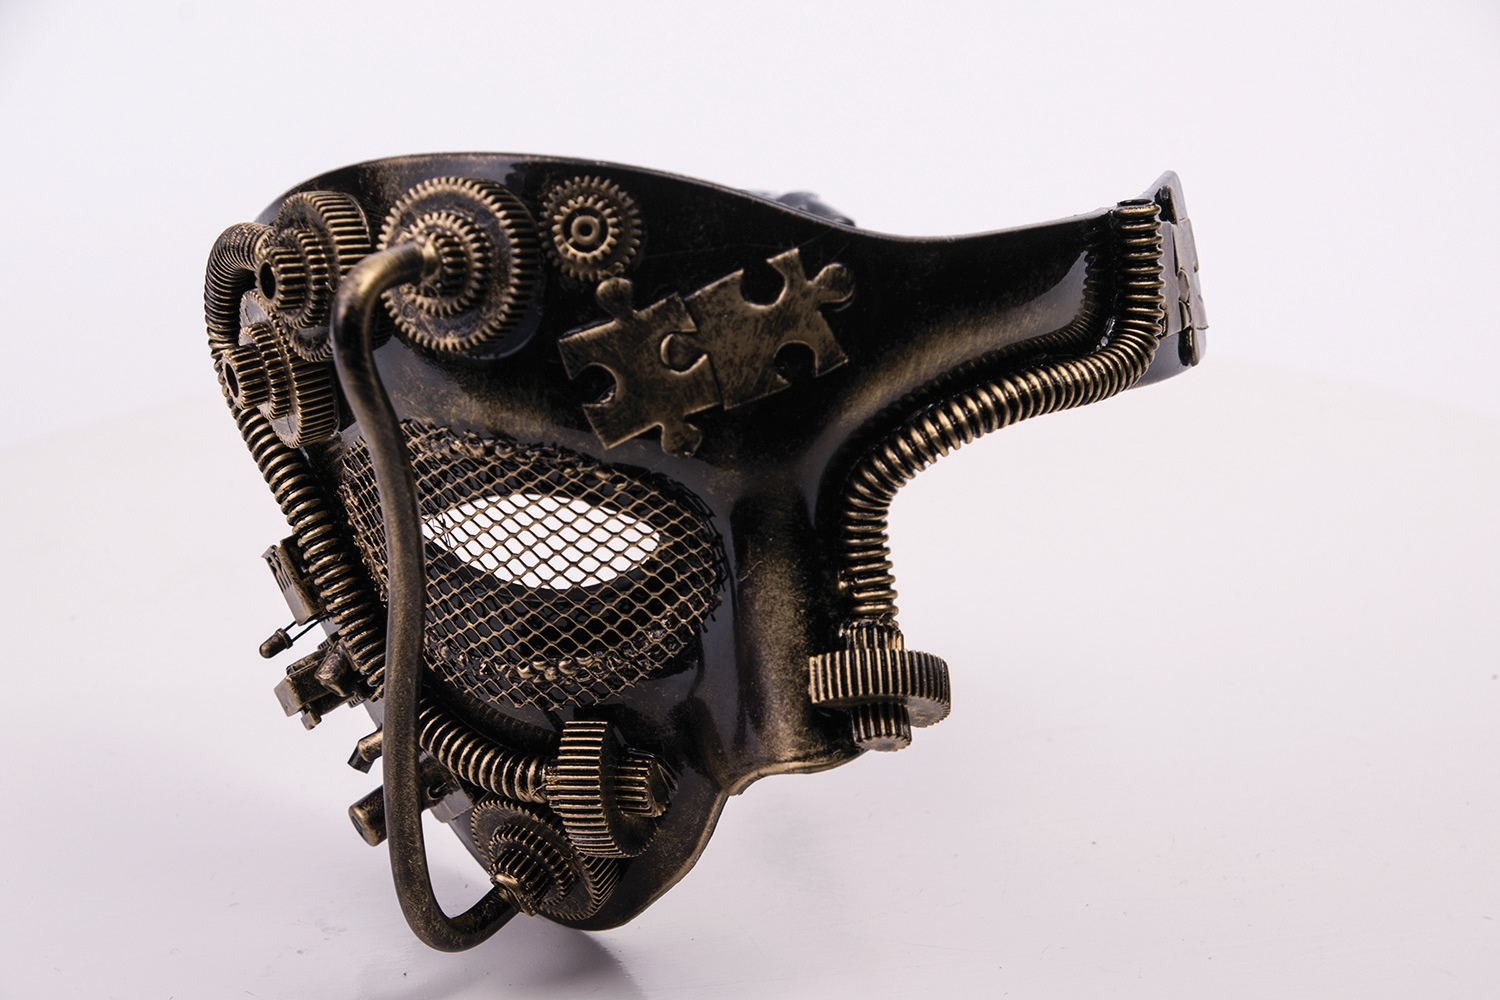 Victorian Industrial Steampunk Black & Gold Half Mask